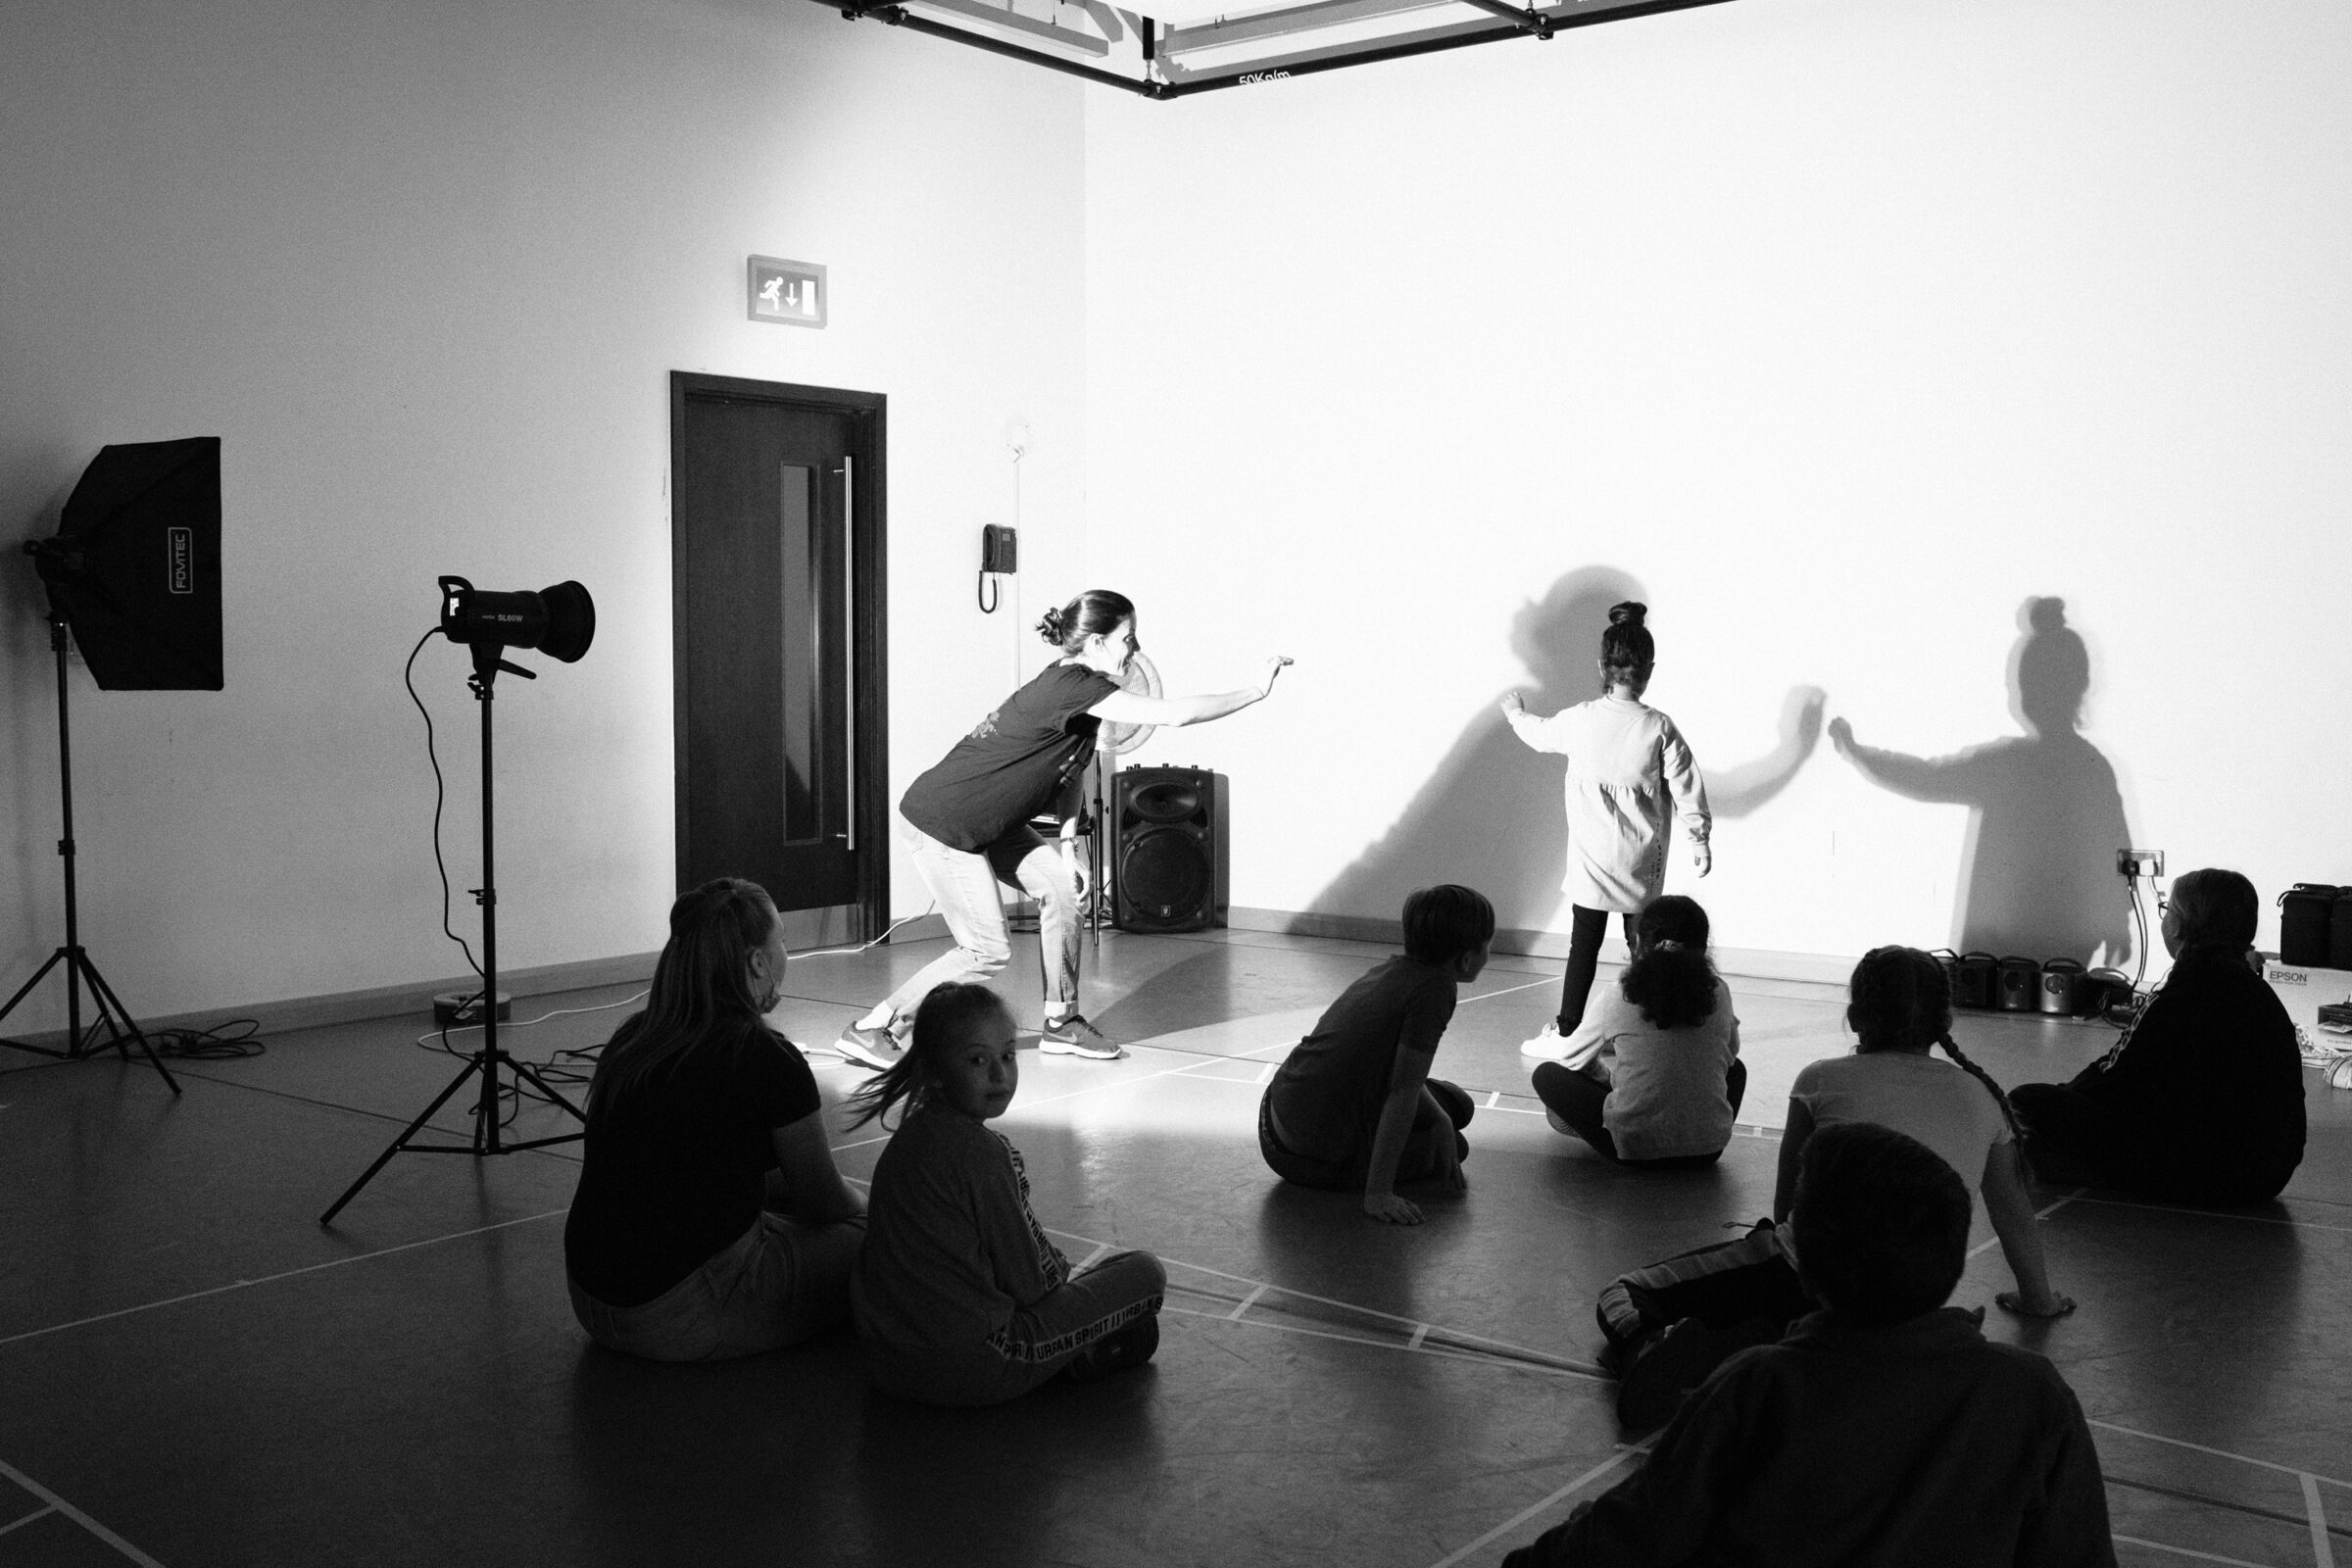 A dance facilitator and child work together with their shadows in against a wall